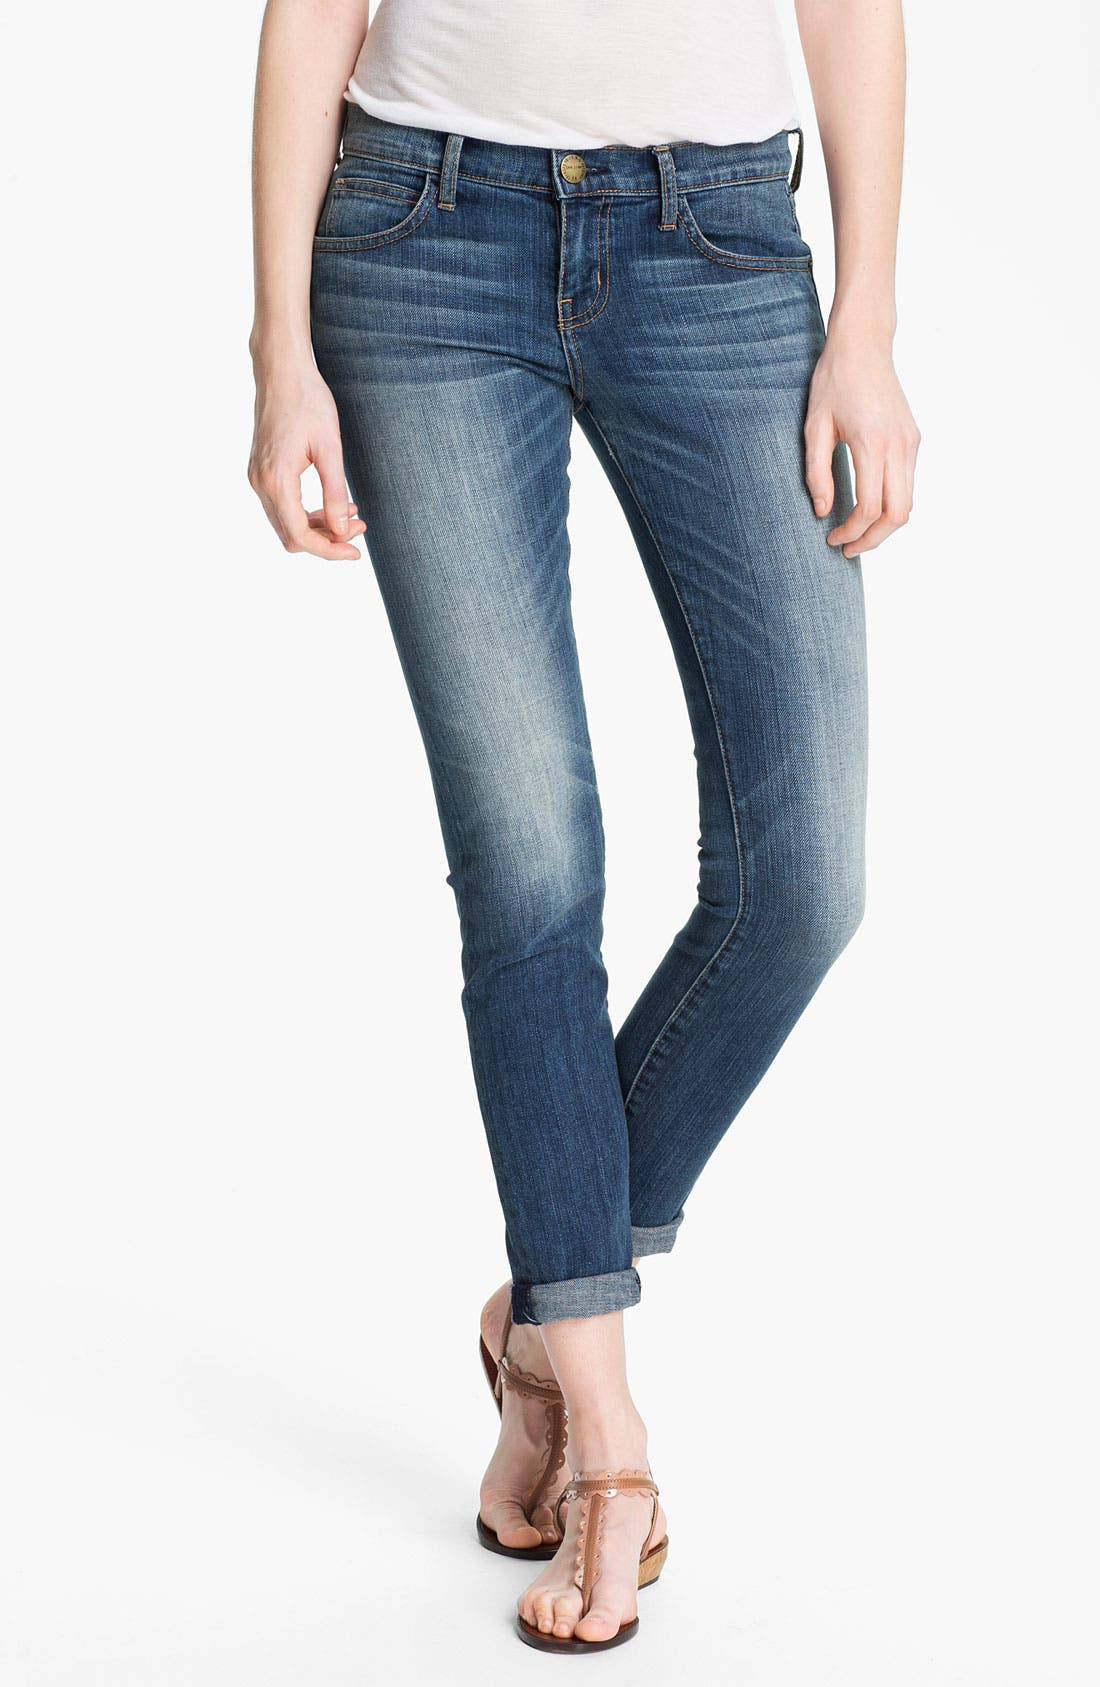 Alternate Image 1 Selected - Current/Elliott 'The Rolled Skinny' Stretch Jeans (Yesterday)